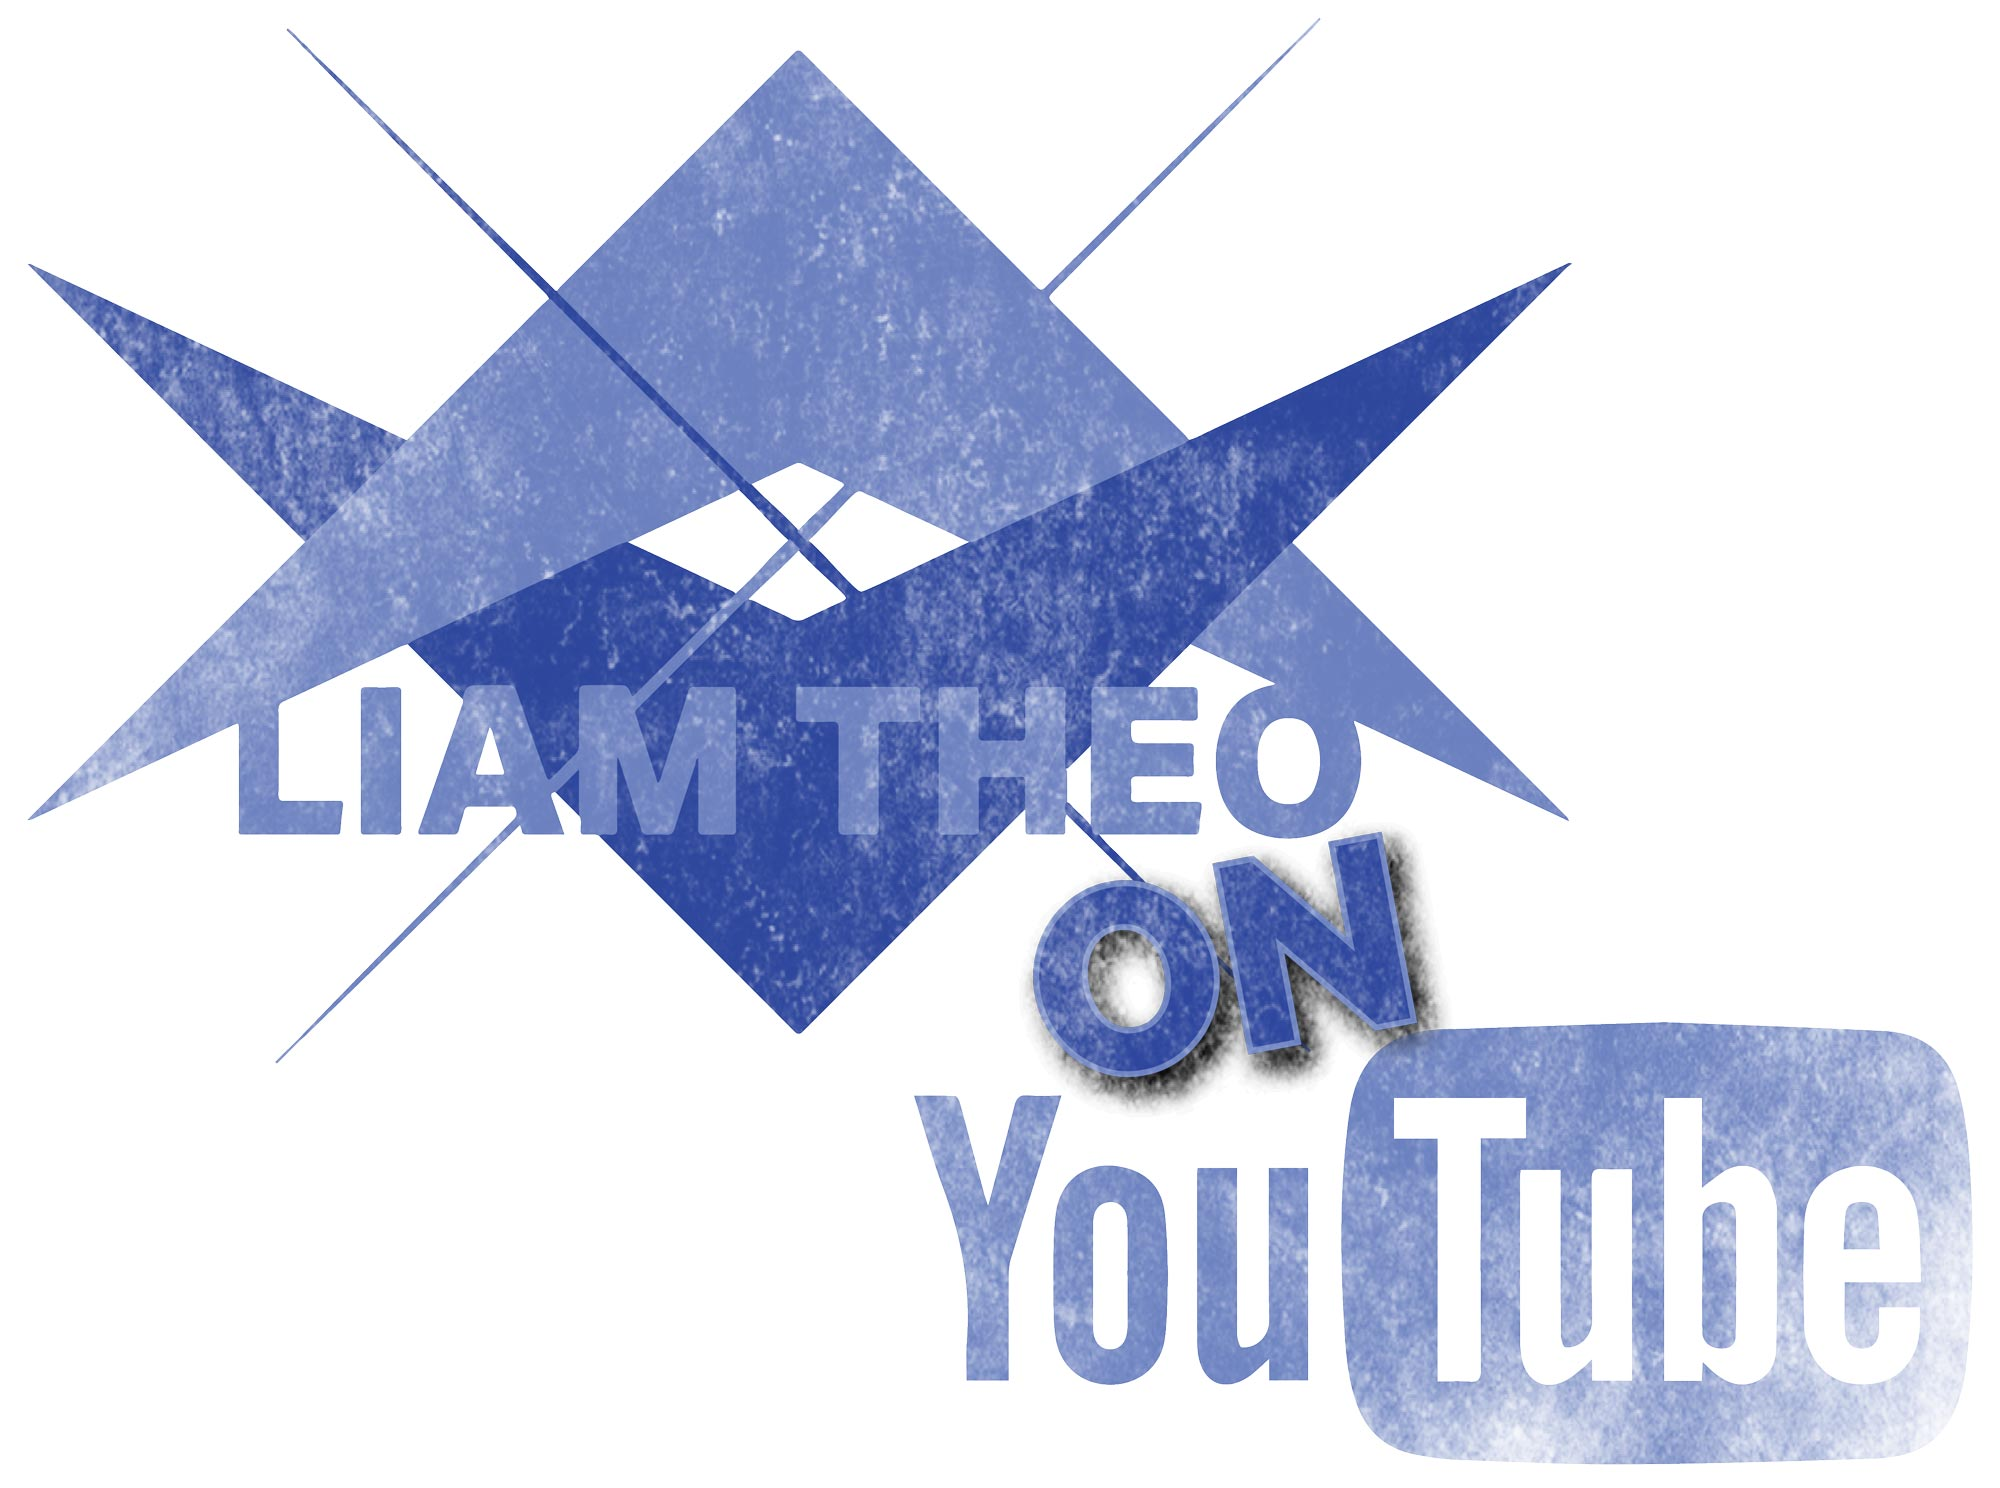 Liam Theo Spickelmier's videos include vlogs, product promos, marketing, artwork creations, cute videos of his dog Maxwell the Golden Doodle, and so much more. All videos can be found on his YouTube channel and all his YouTUbe videos can be found on his website.